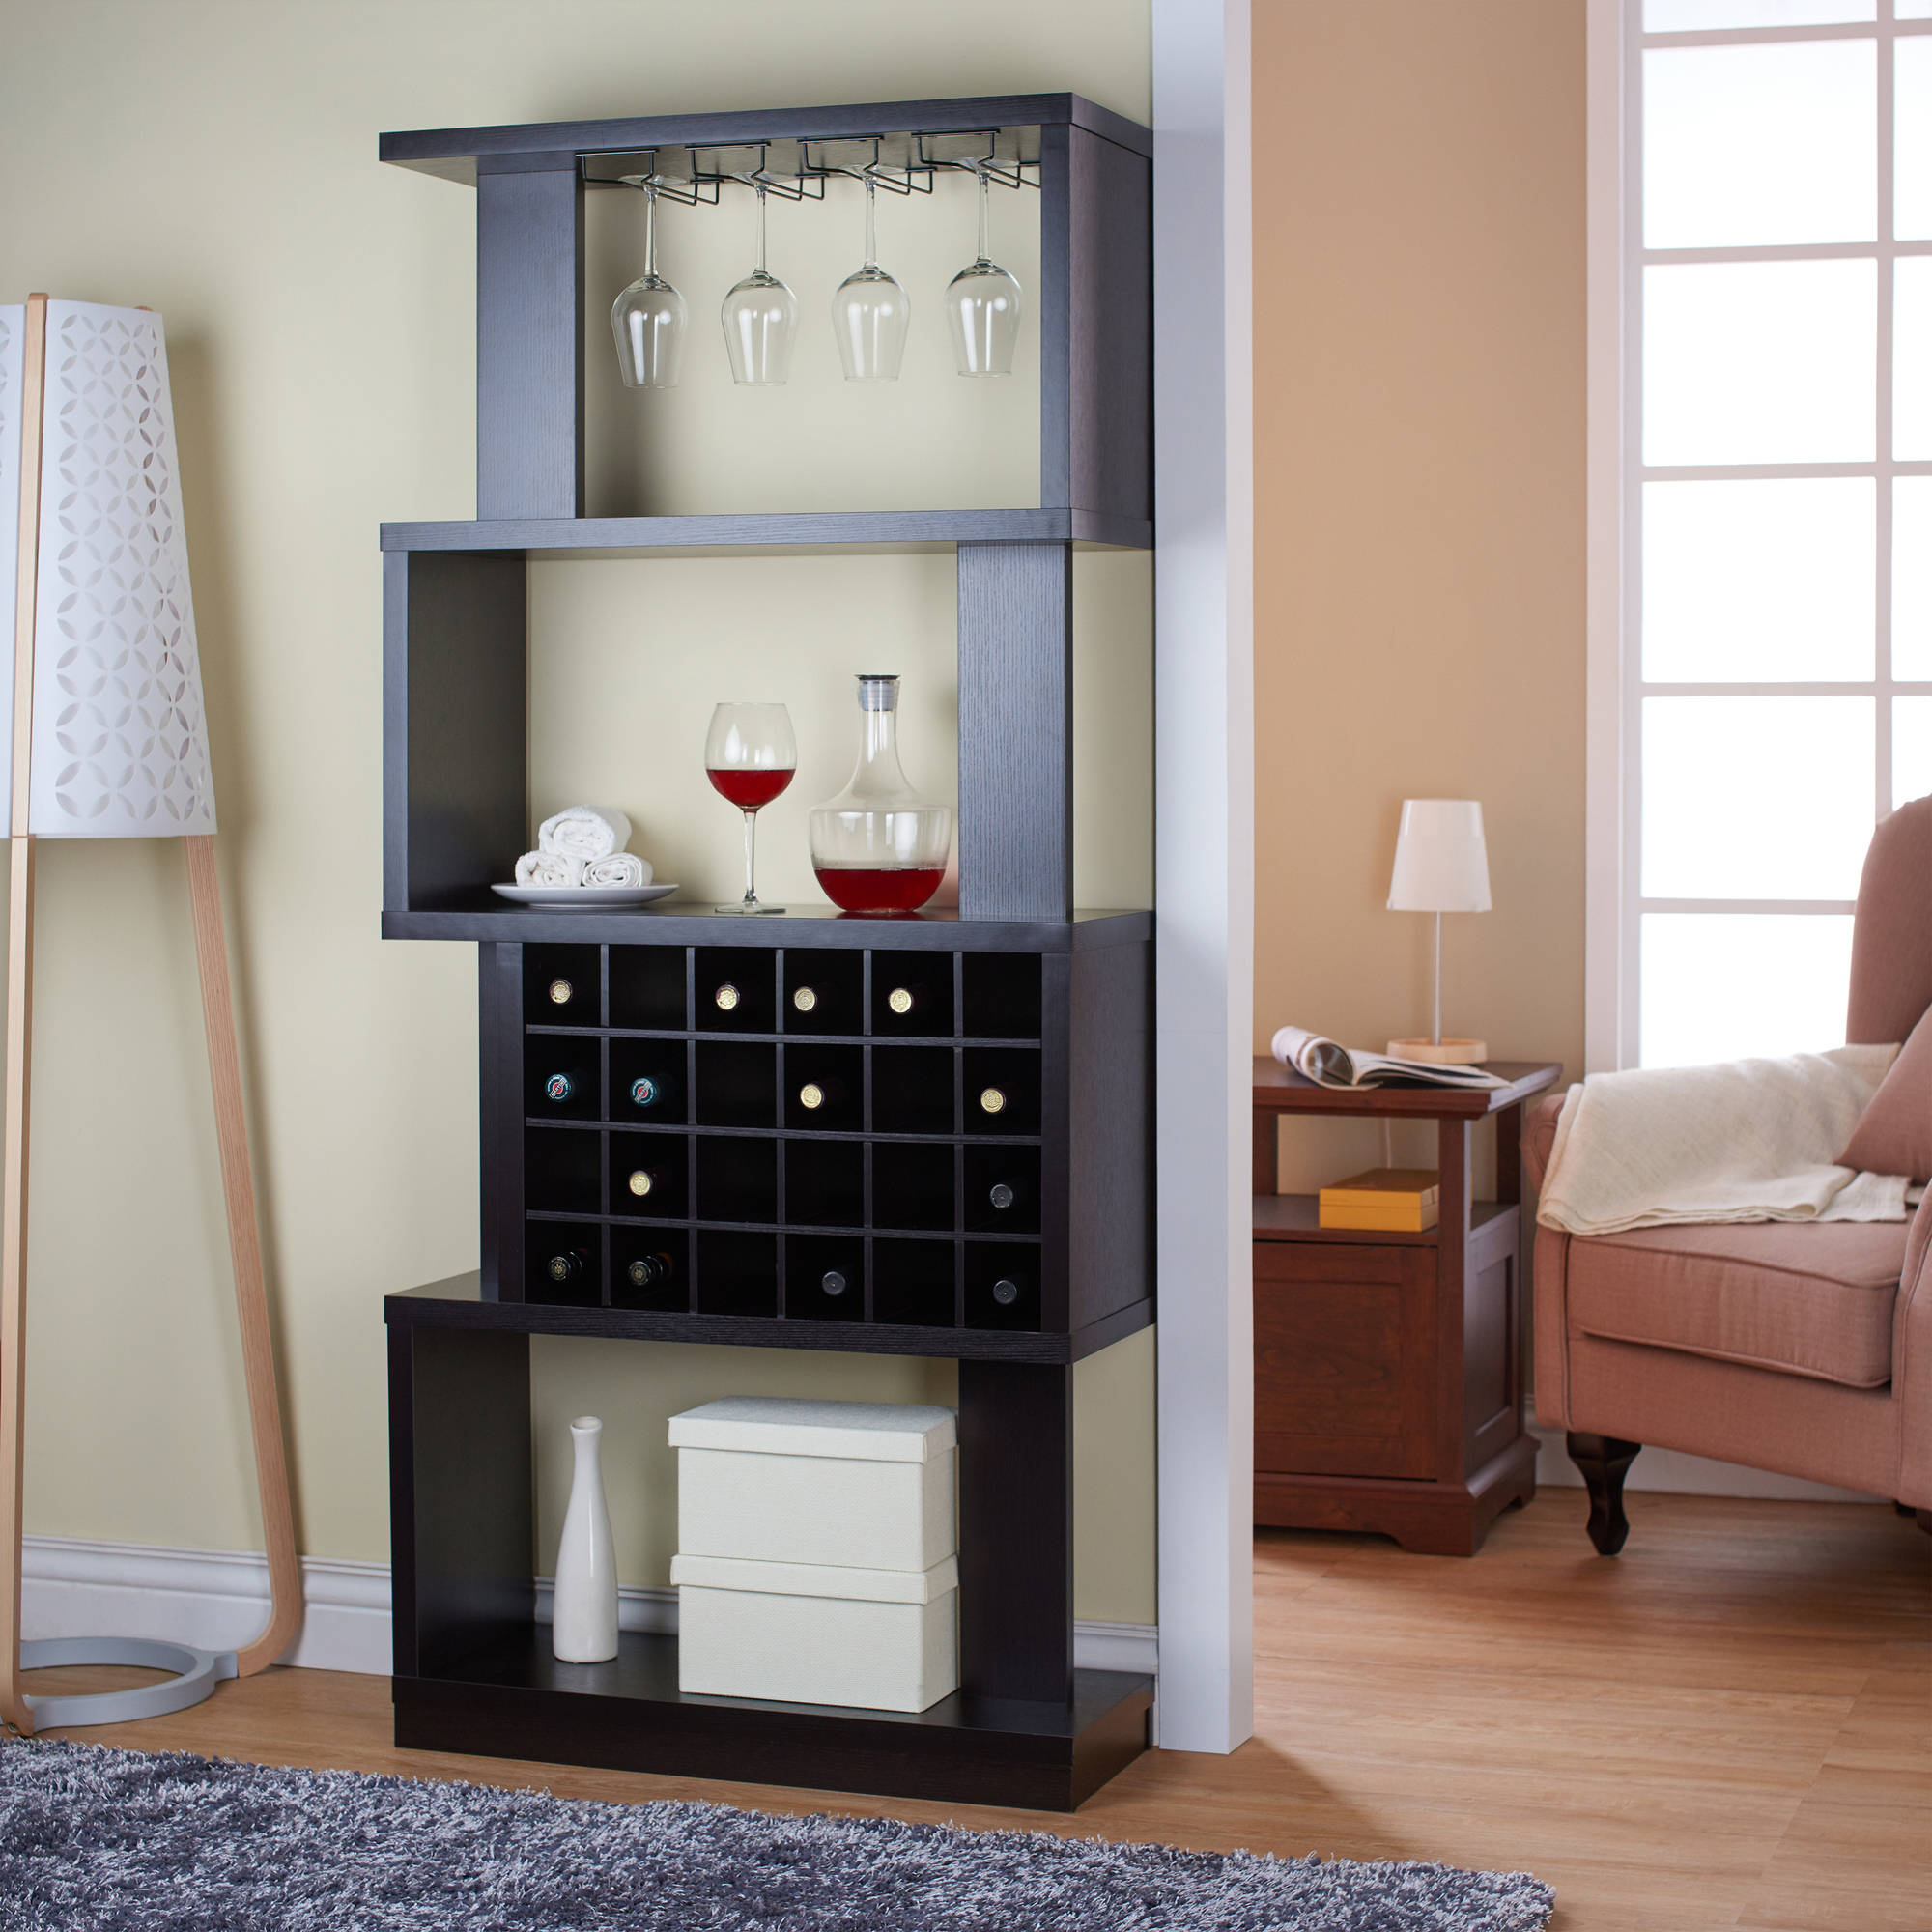 Details About 4 Tier Wood Wine Stand Bar Rack Cabinet Shelving Unit Holder Wall Room Divider